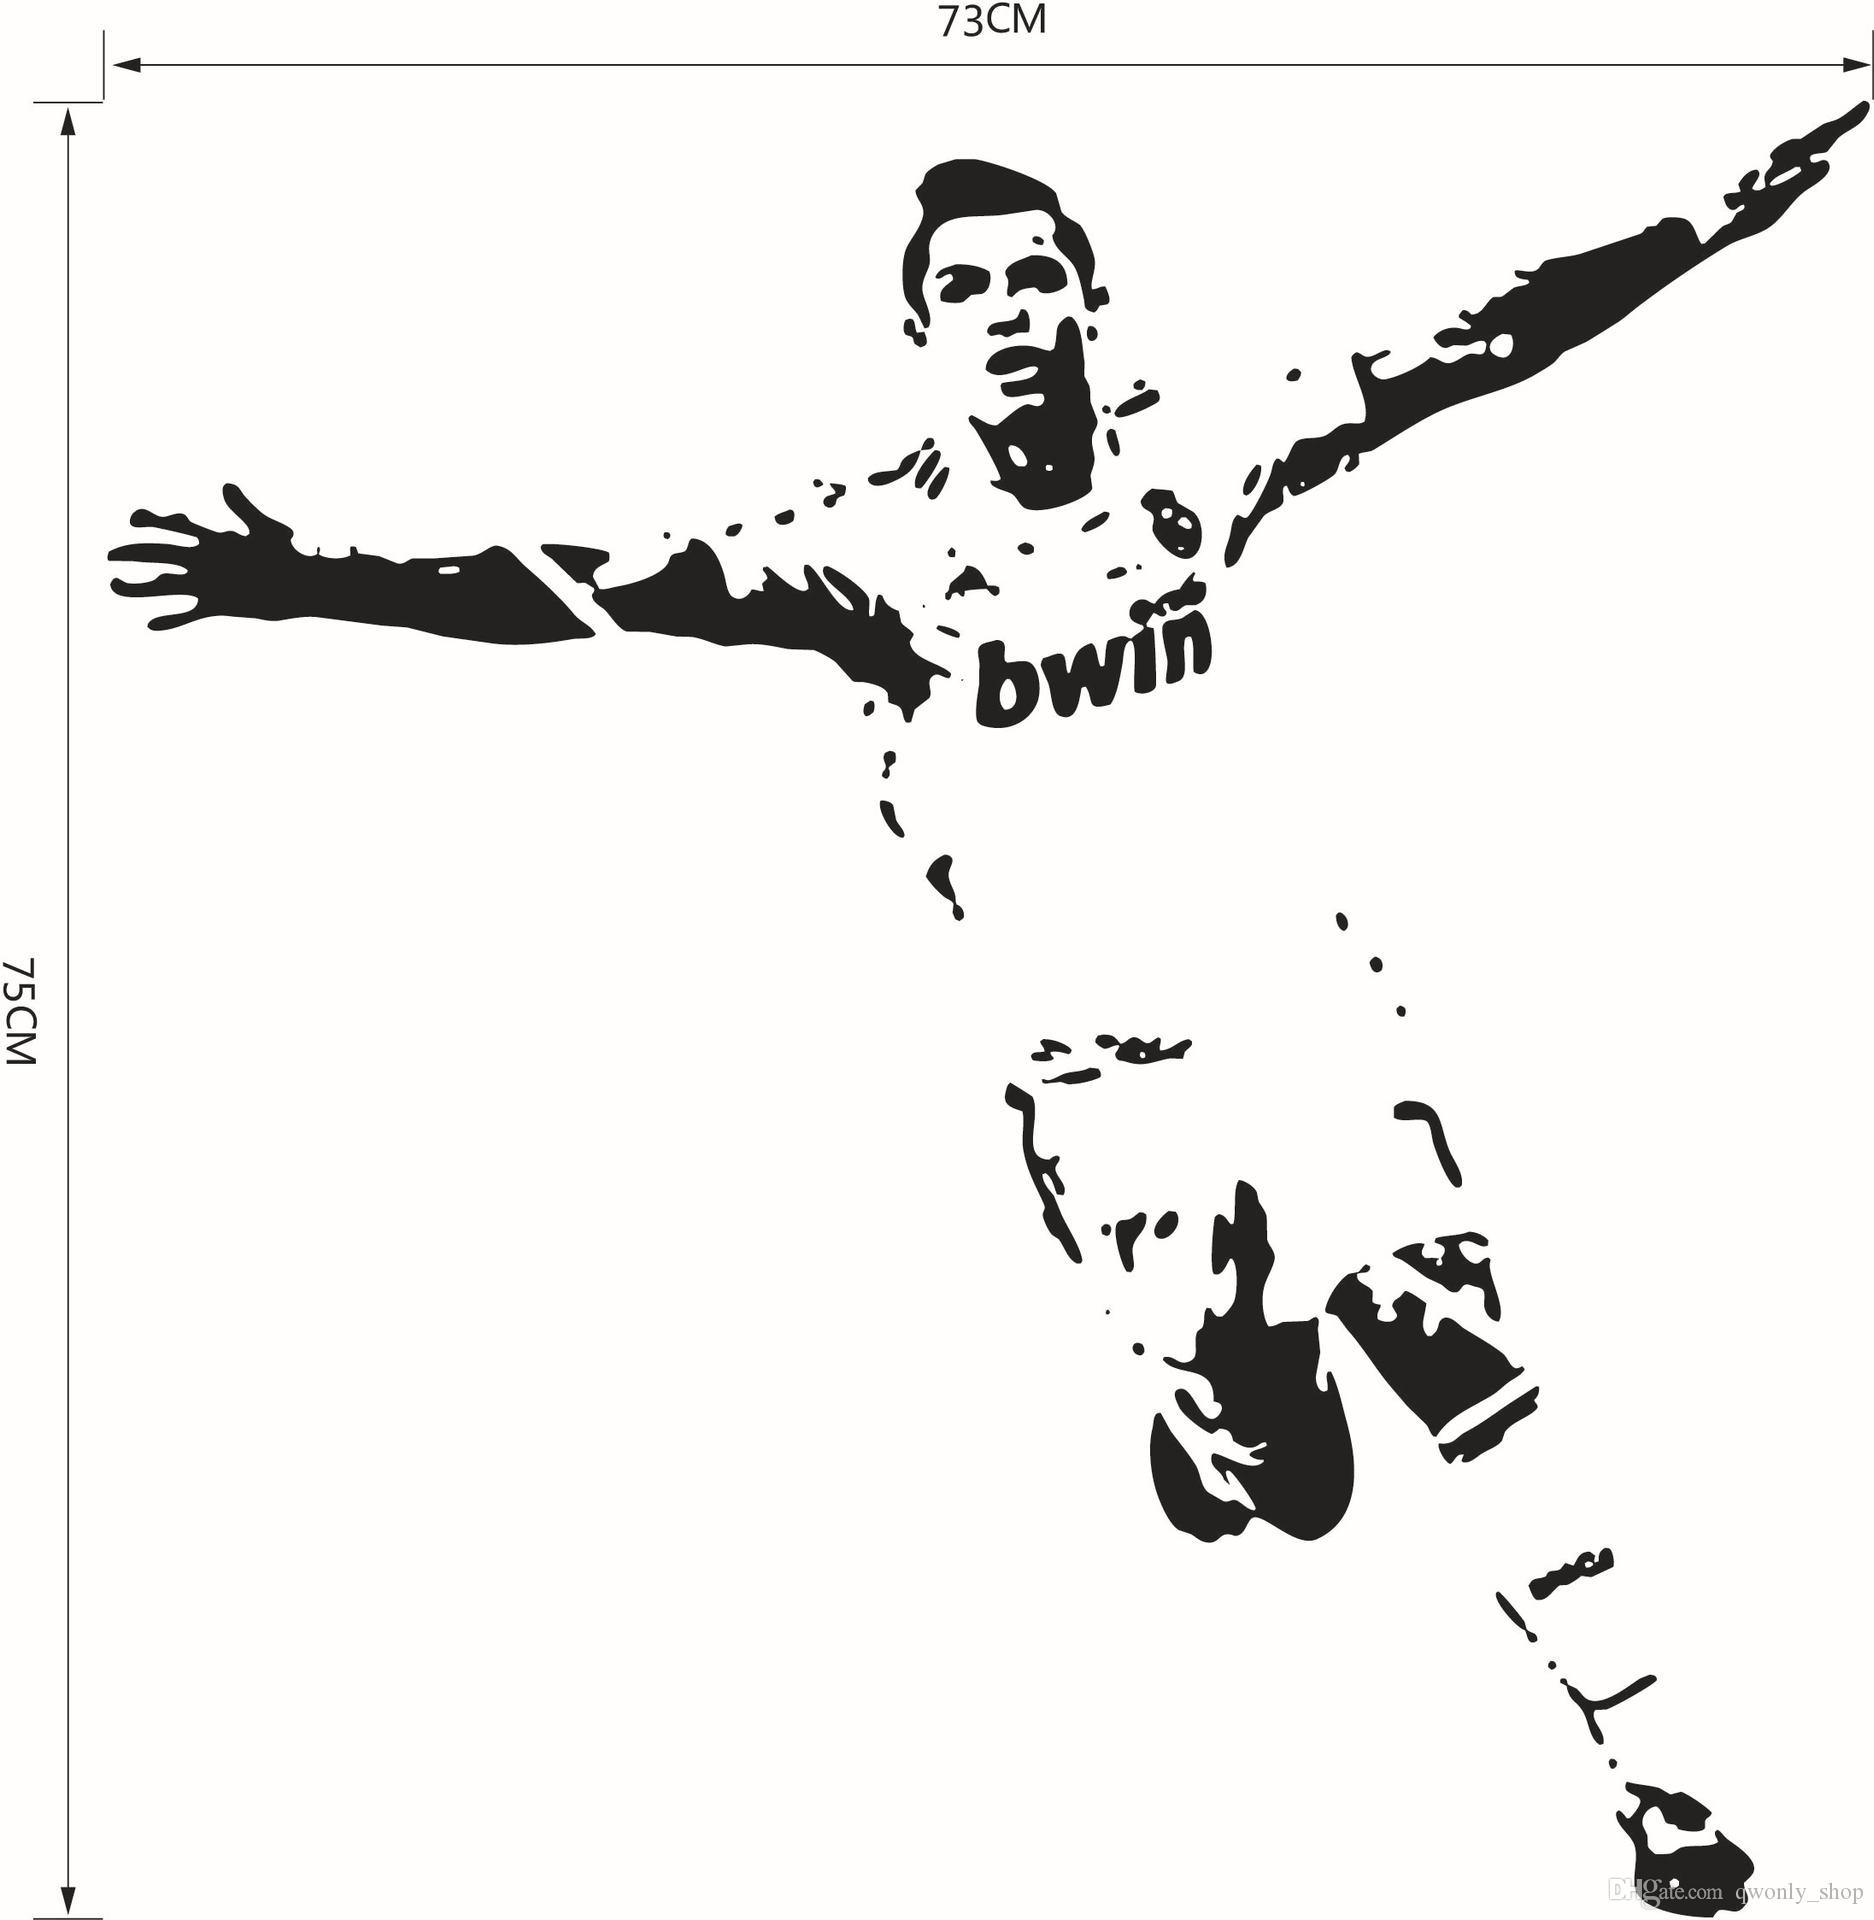 Football soccer star home decor wall stickers pvc vinyl removable art mural home decor football cristiano ronaldo roommates stickers self adhesive wall